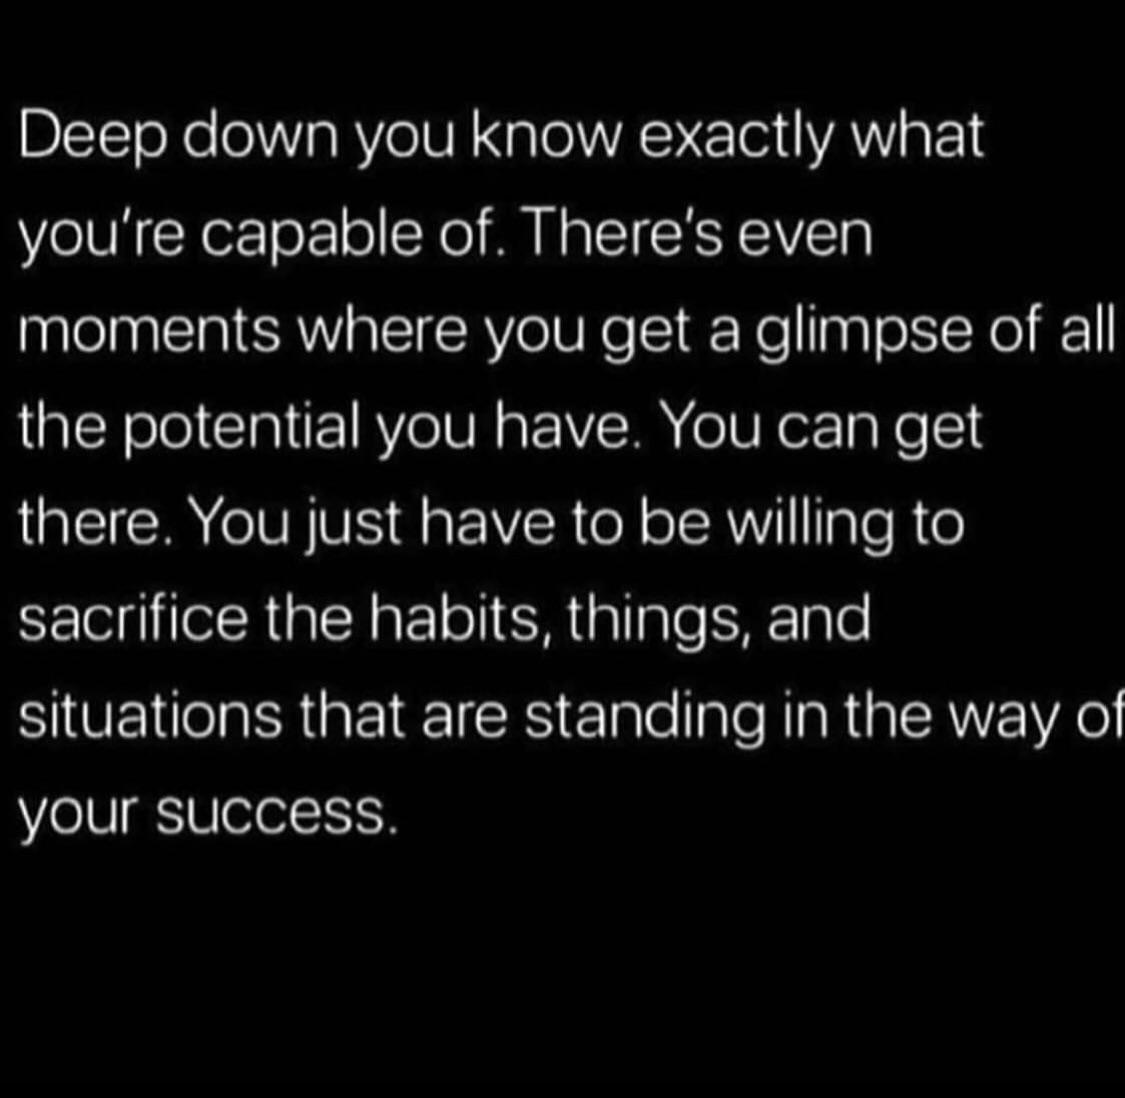 [Image] YOU KNOW IT